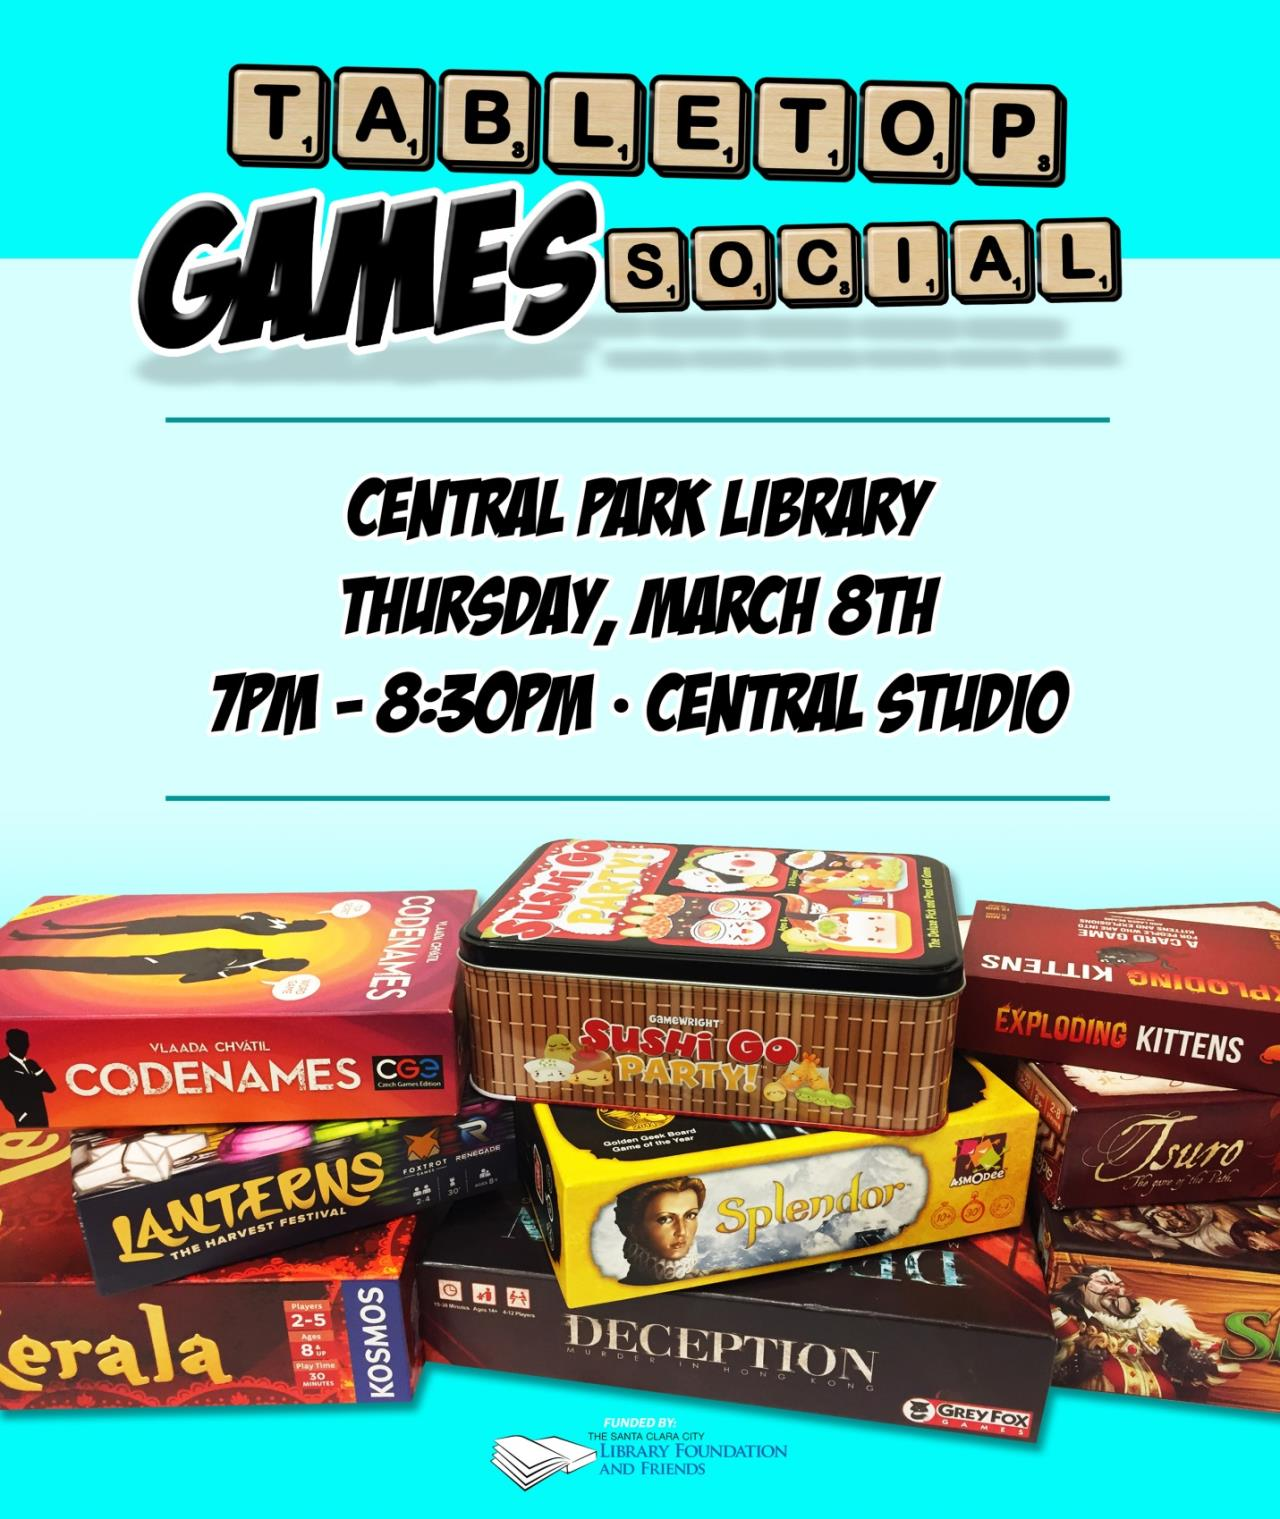 Tabletop Games Social, Central Park Library, Thursday March 8th, 7 PM to 8:30 PM, Central Studios. Image of board game boxes.